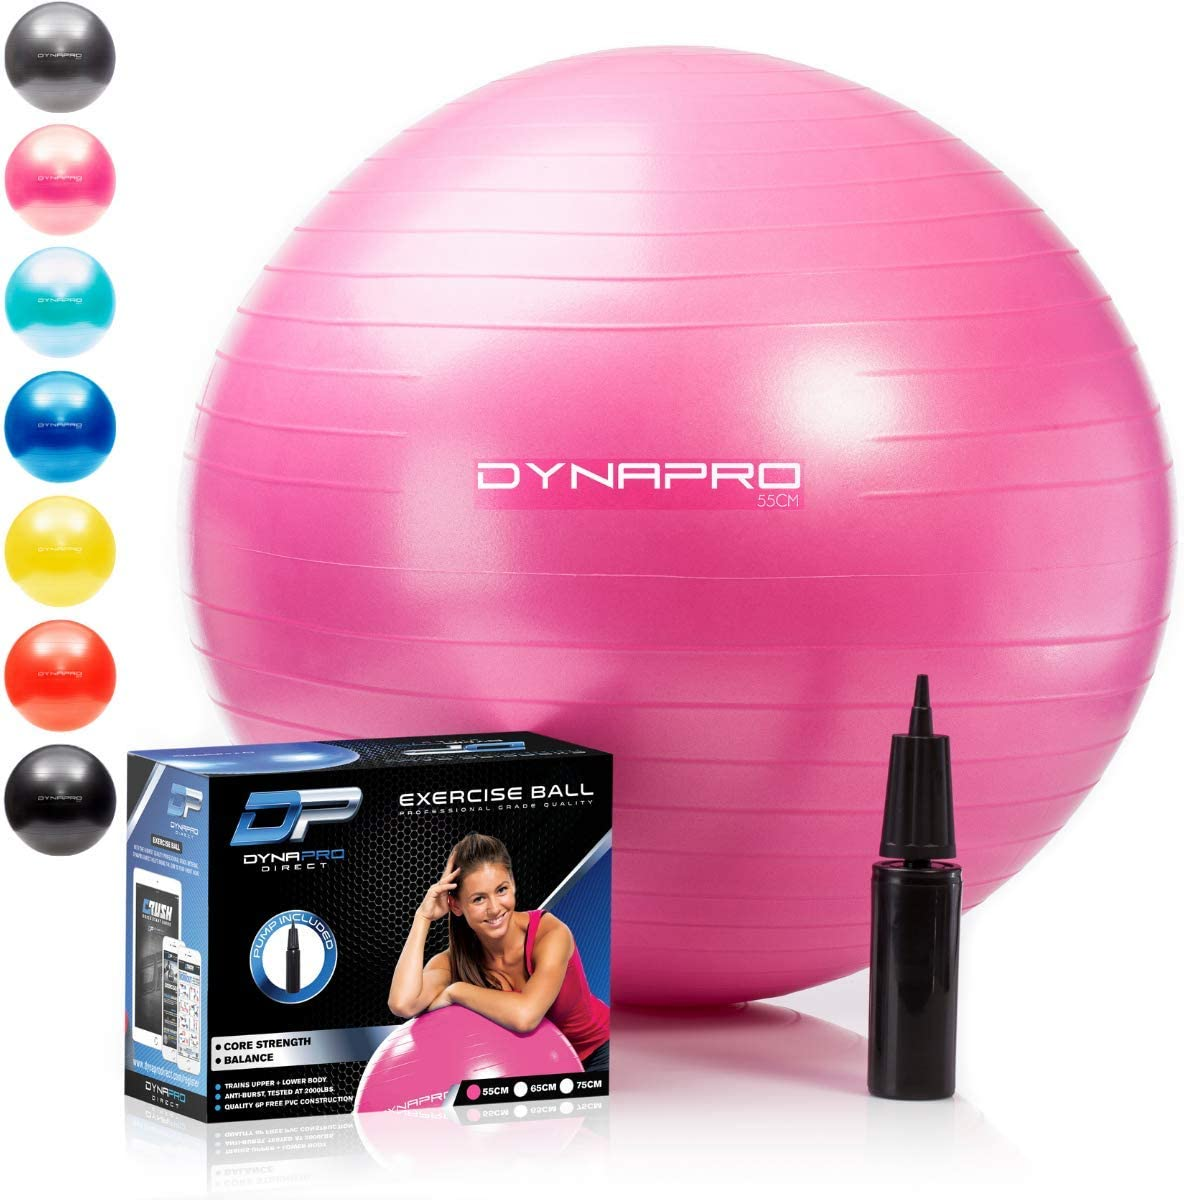 Classification of exercise balls on the market today